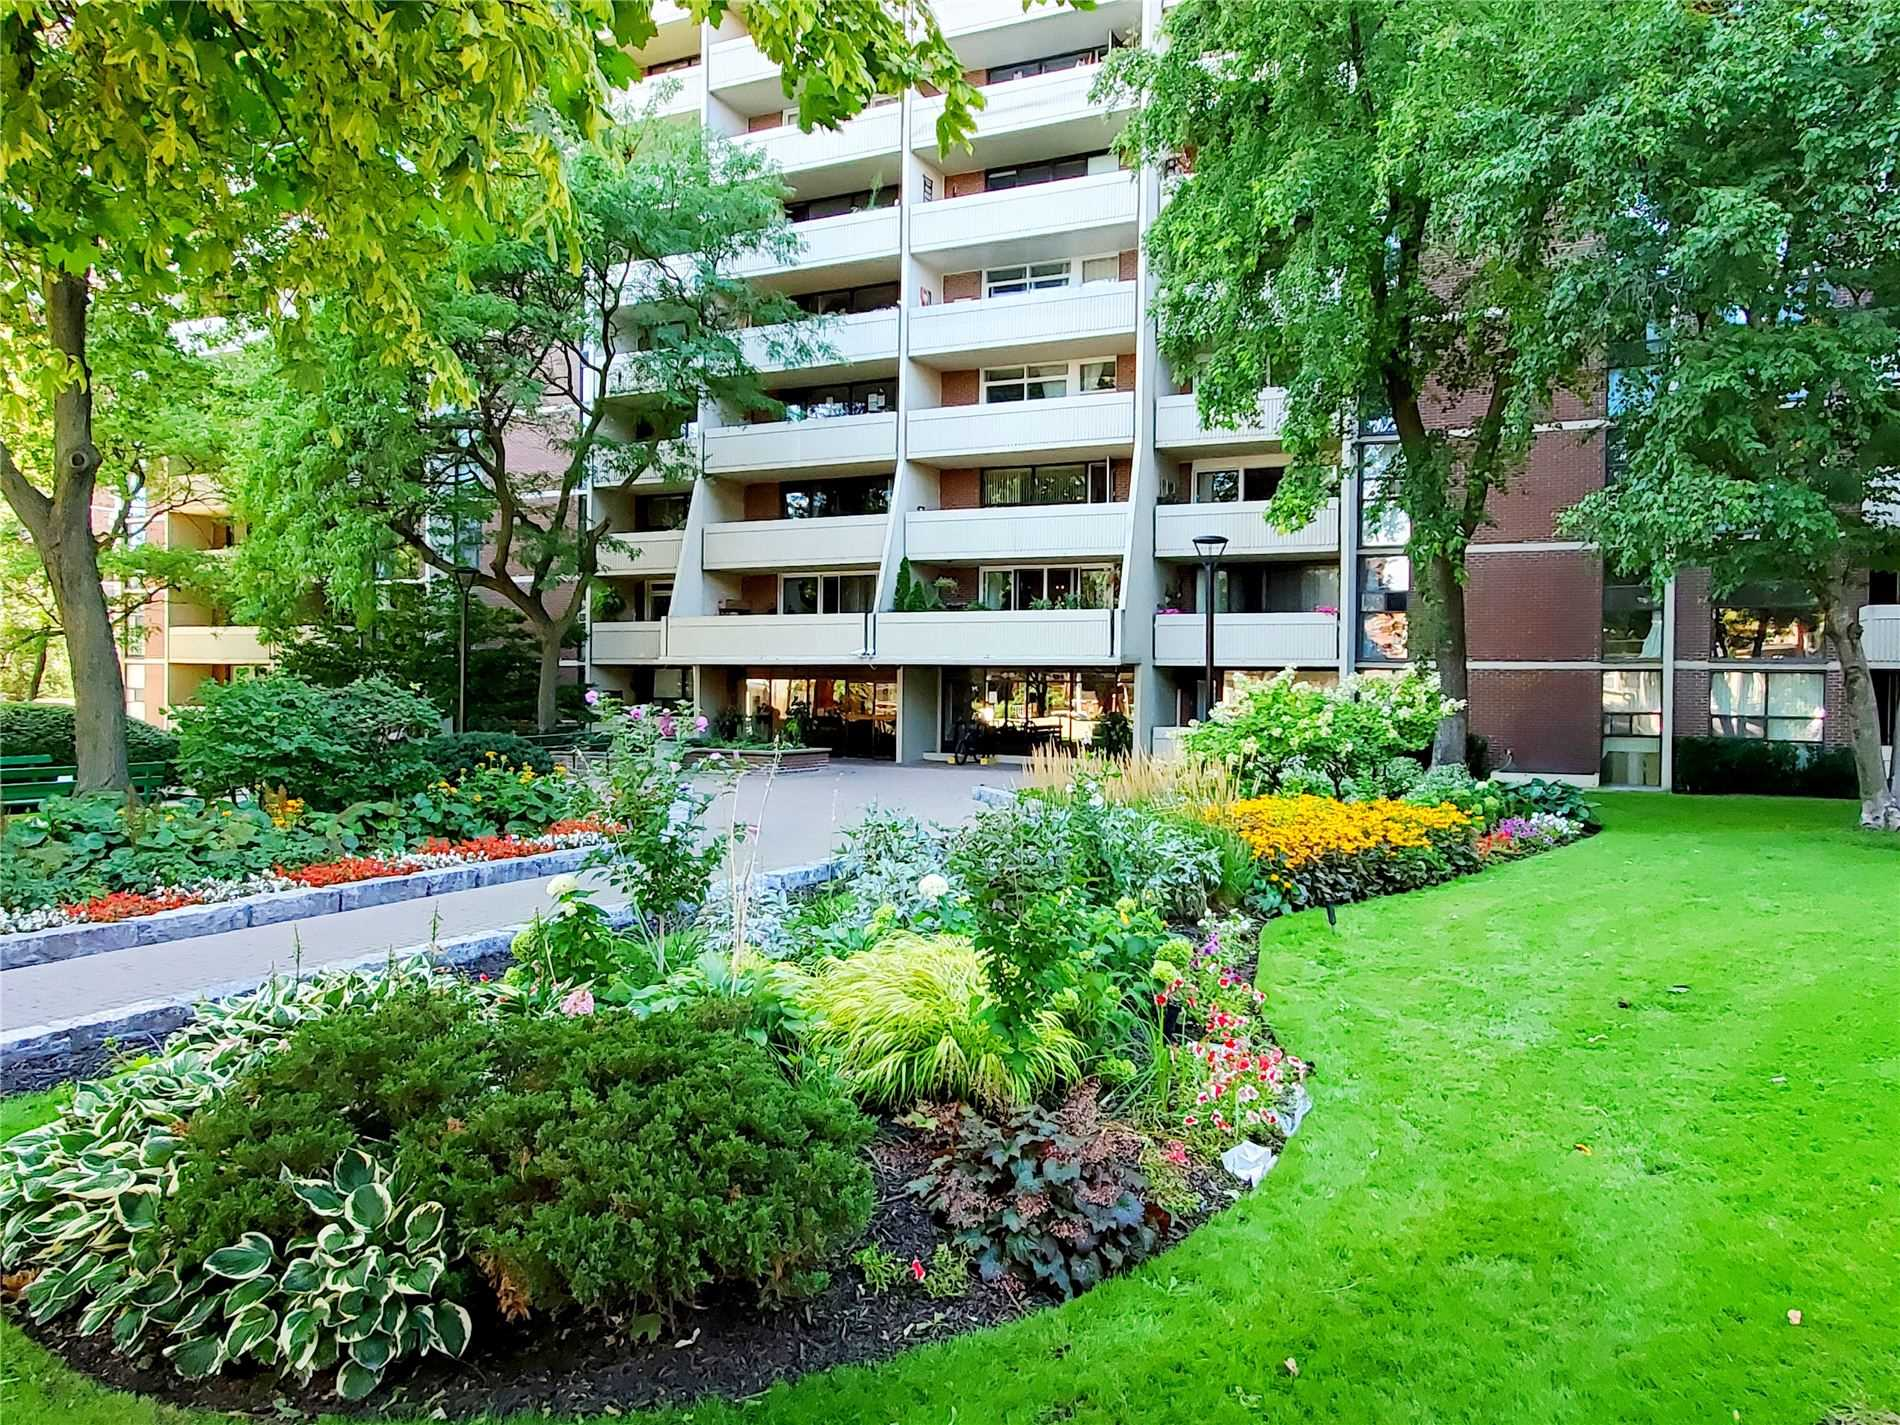 40 Homewood Ave, Toronto, Ontario M4Y 2K2, 3 Rooms Rooms,1 BathroomBathrooms,Condo Apt,For Sale,Homewood,C4879465